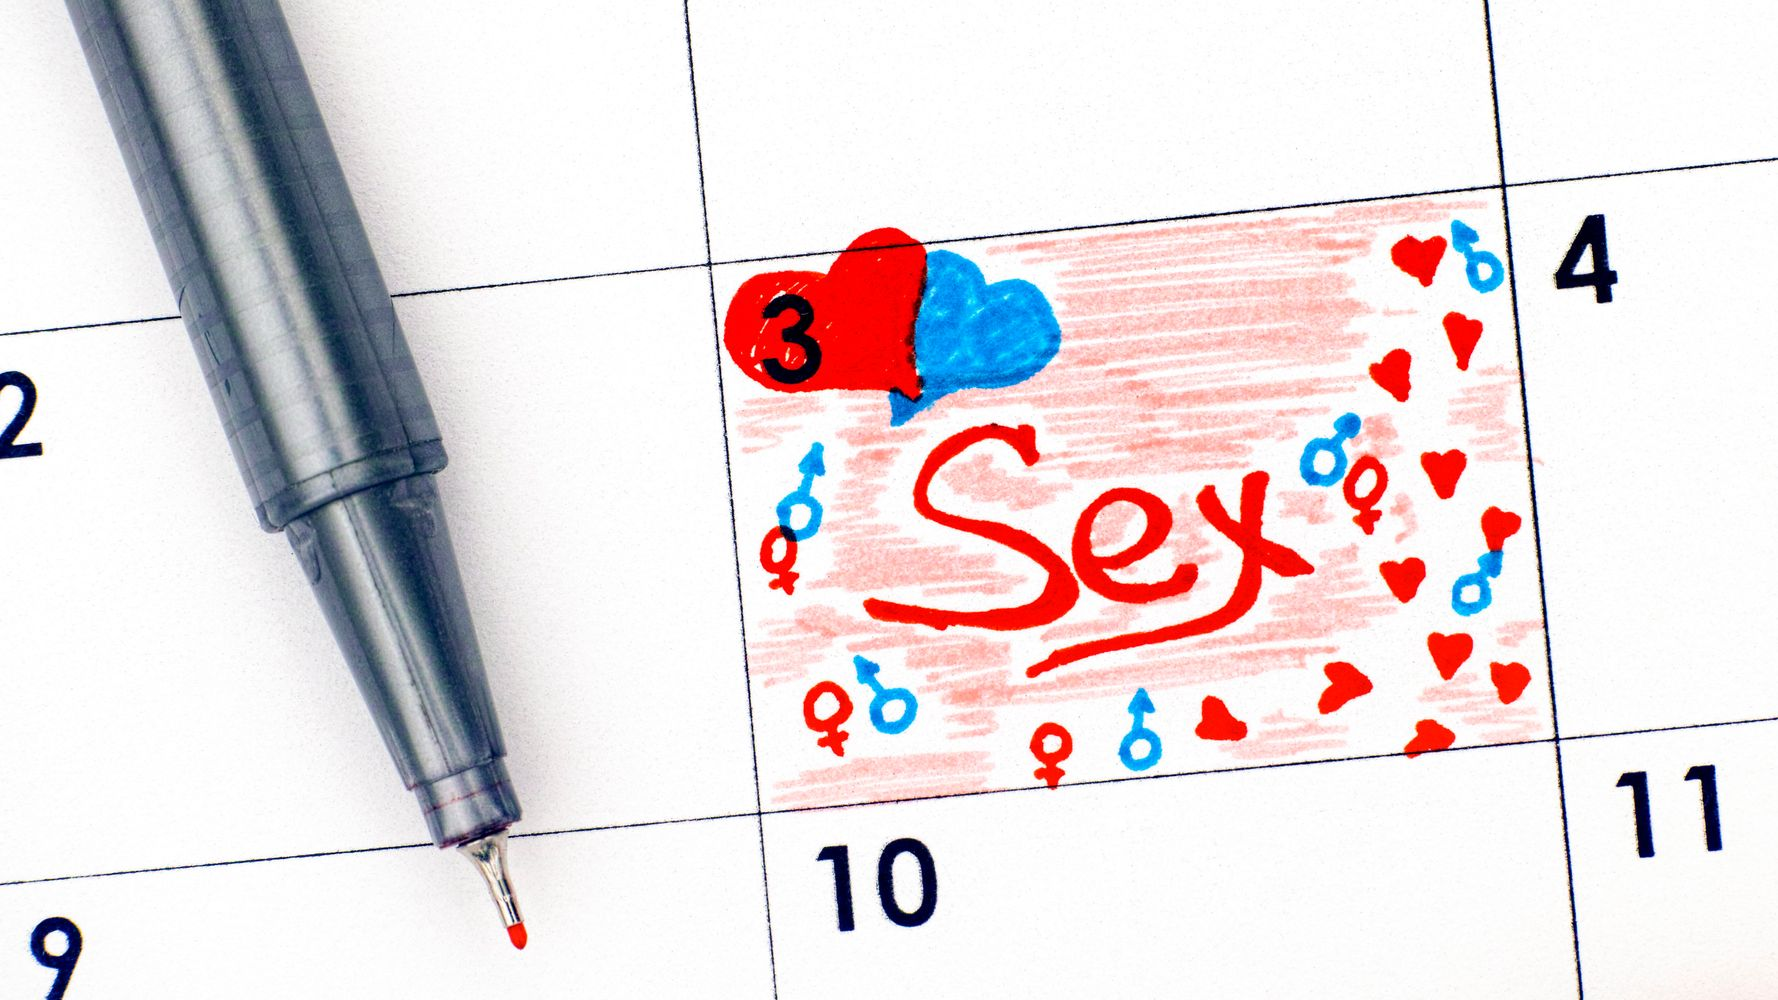 How Often Married Couples Have Sex After 5, 10, 20, 30 Years